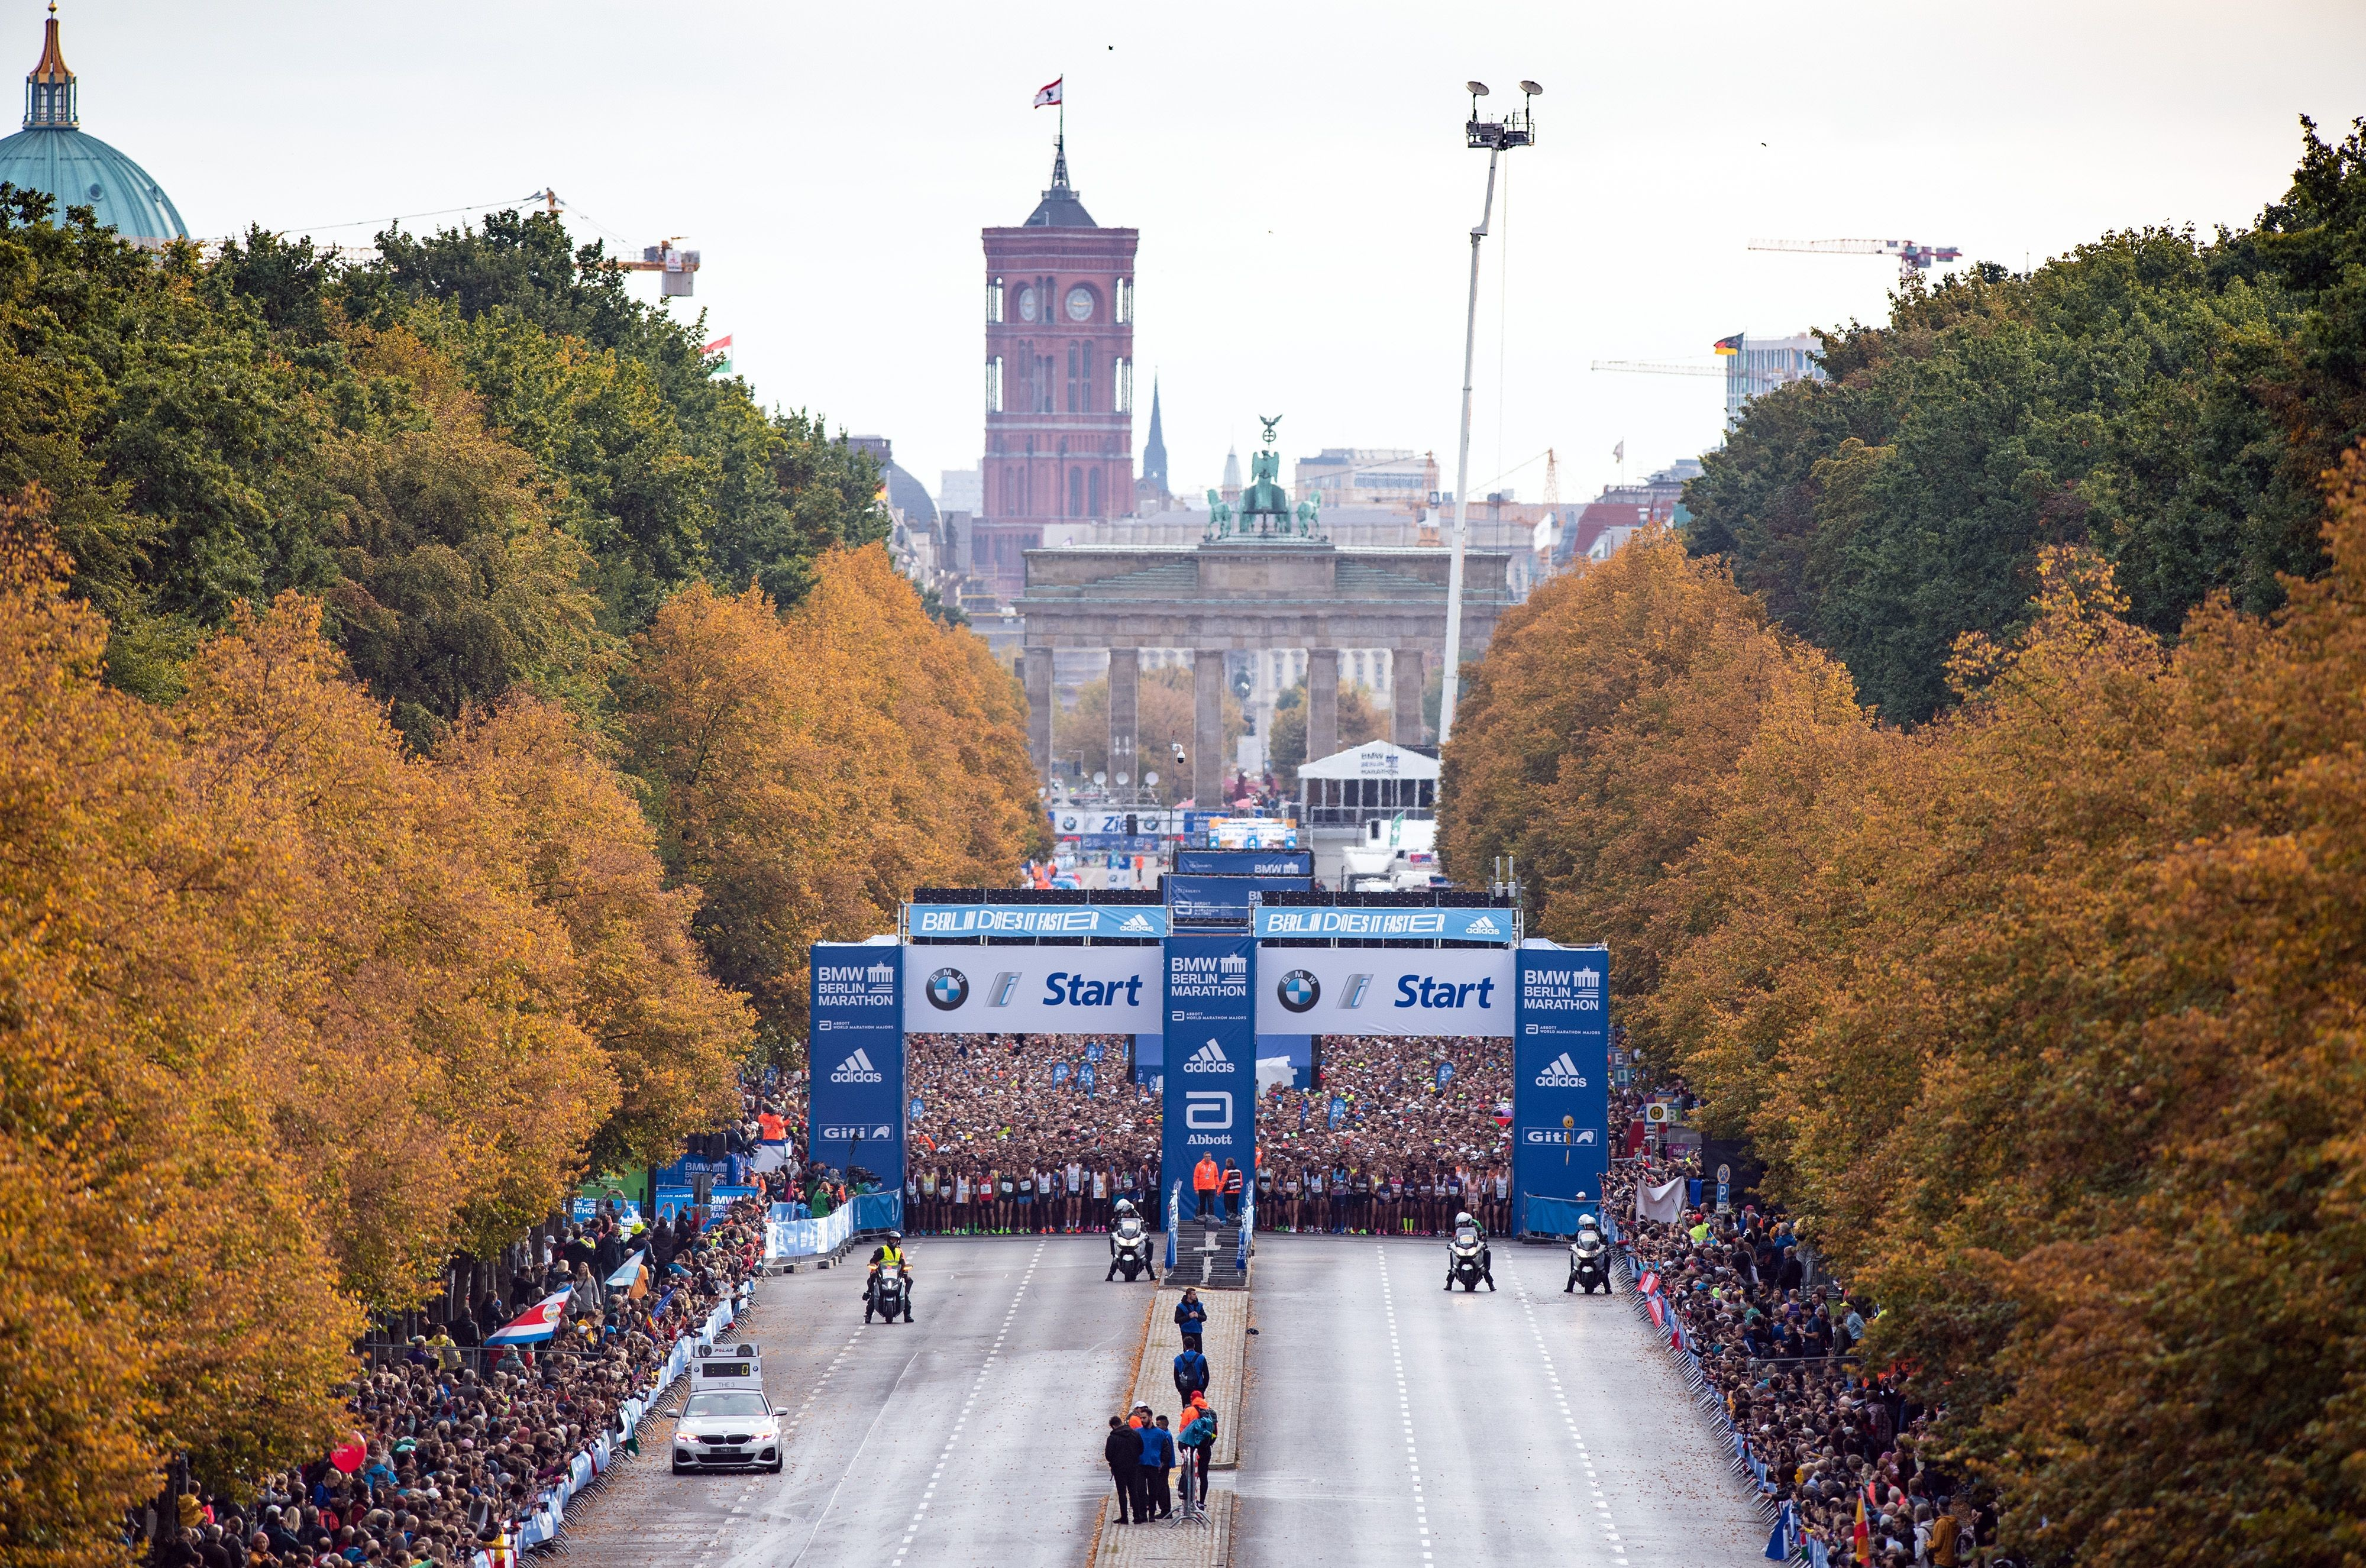 The Berlin Marathon can´t be held as planned in September because of new restrictions in the city related to the coronavirus pandemic